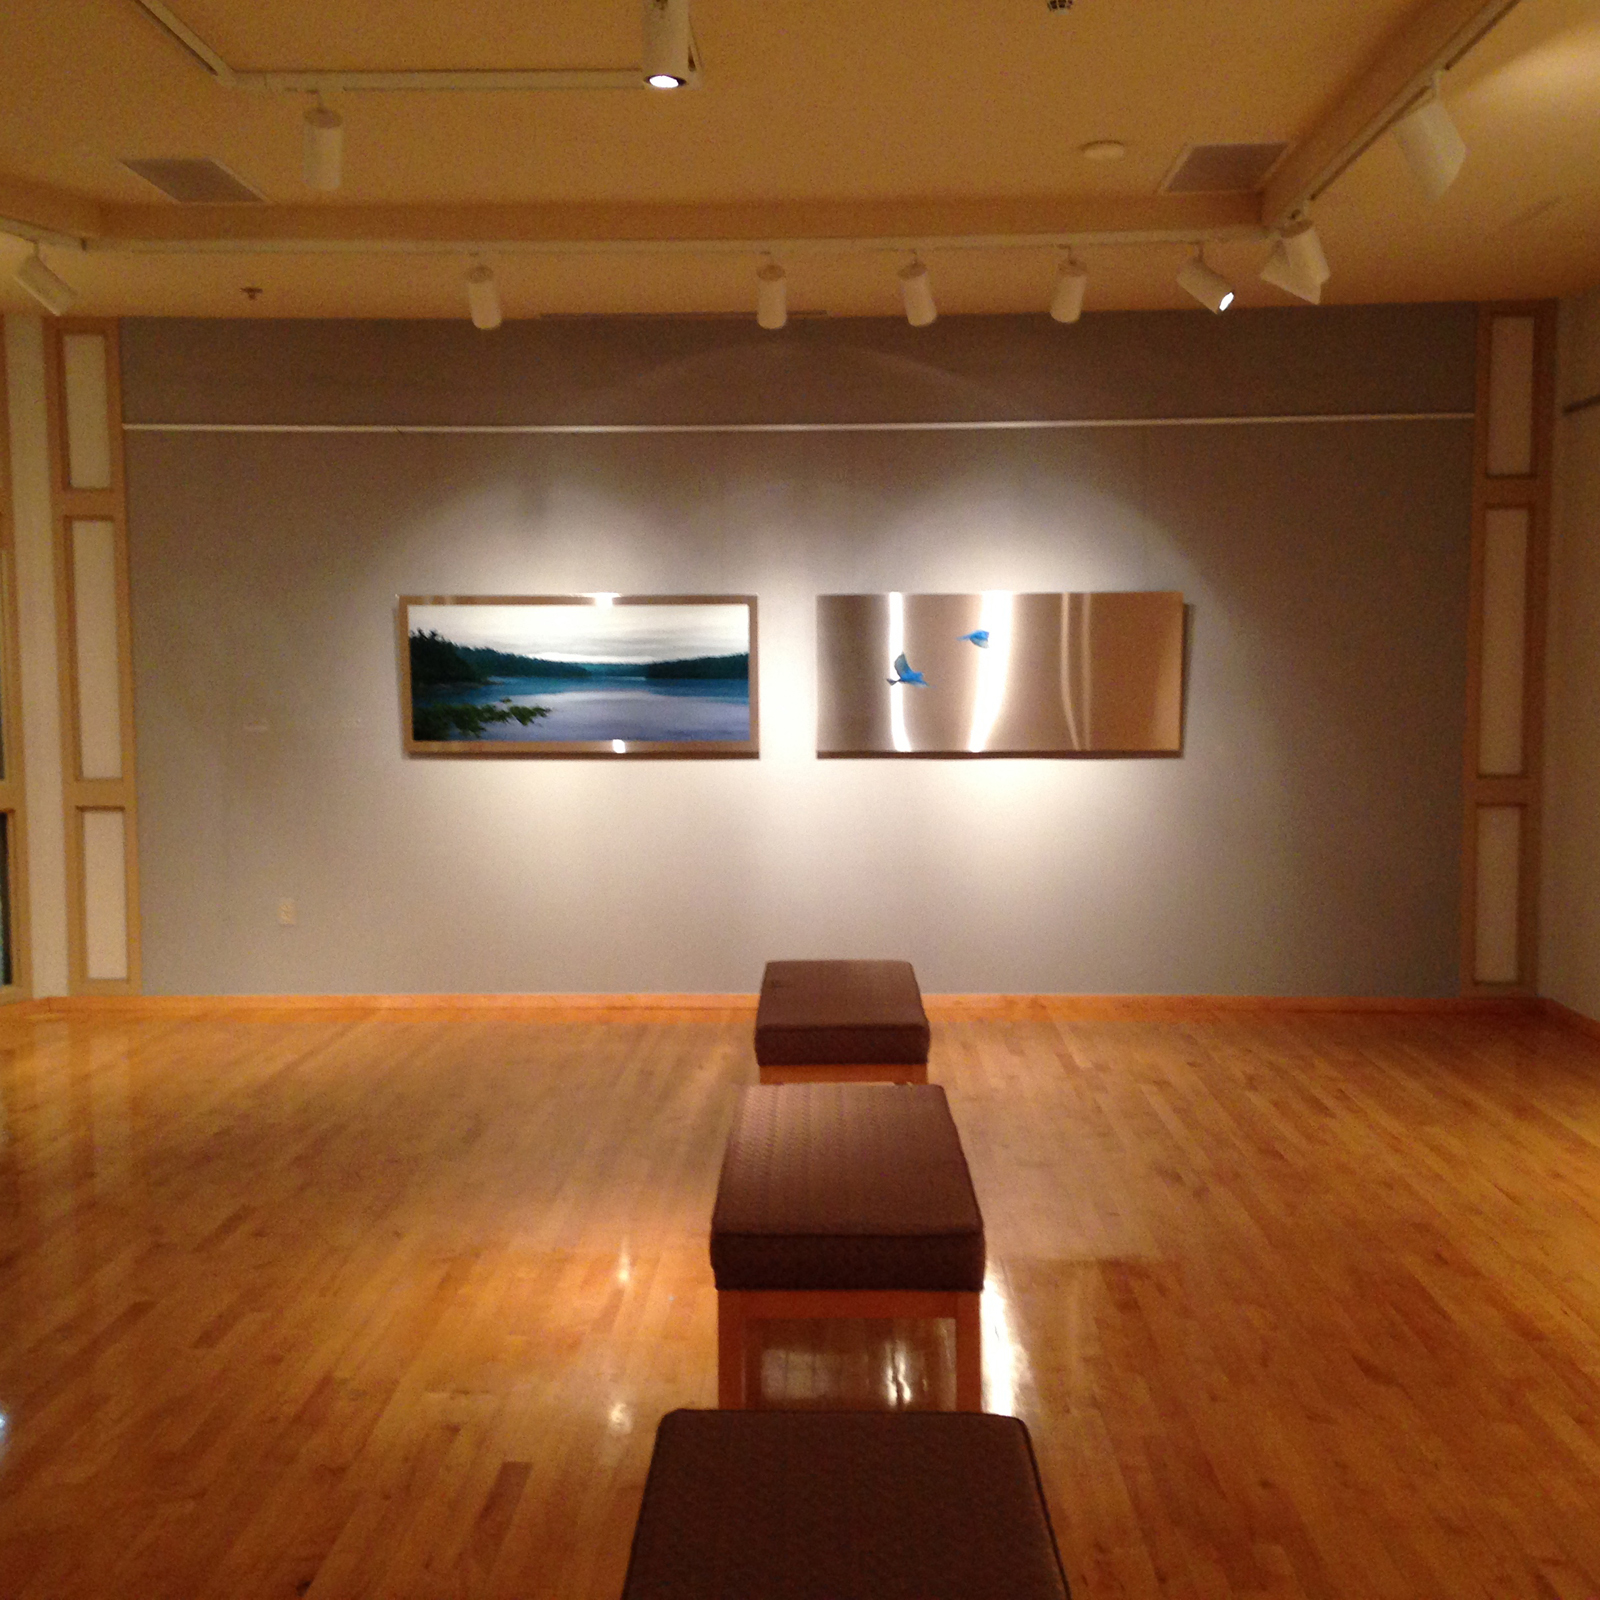 Installation view of Departure diptych at the Lakewood Cultural Center from the exhibition Unbound ,  2015